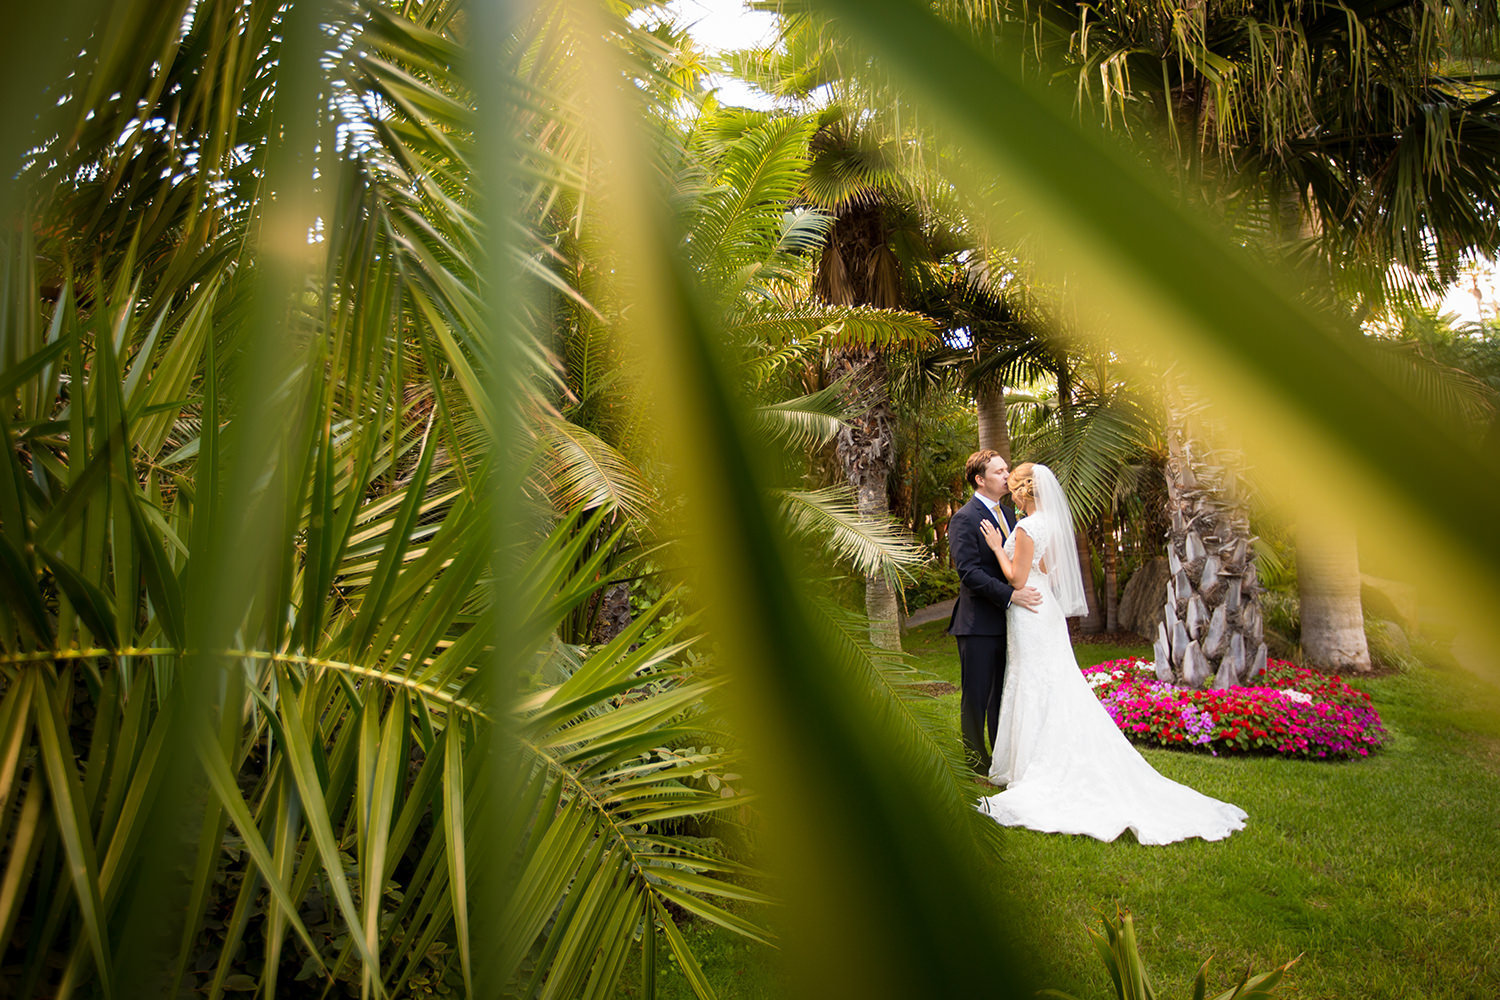 tropical plants with the bride and groom